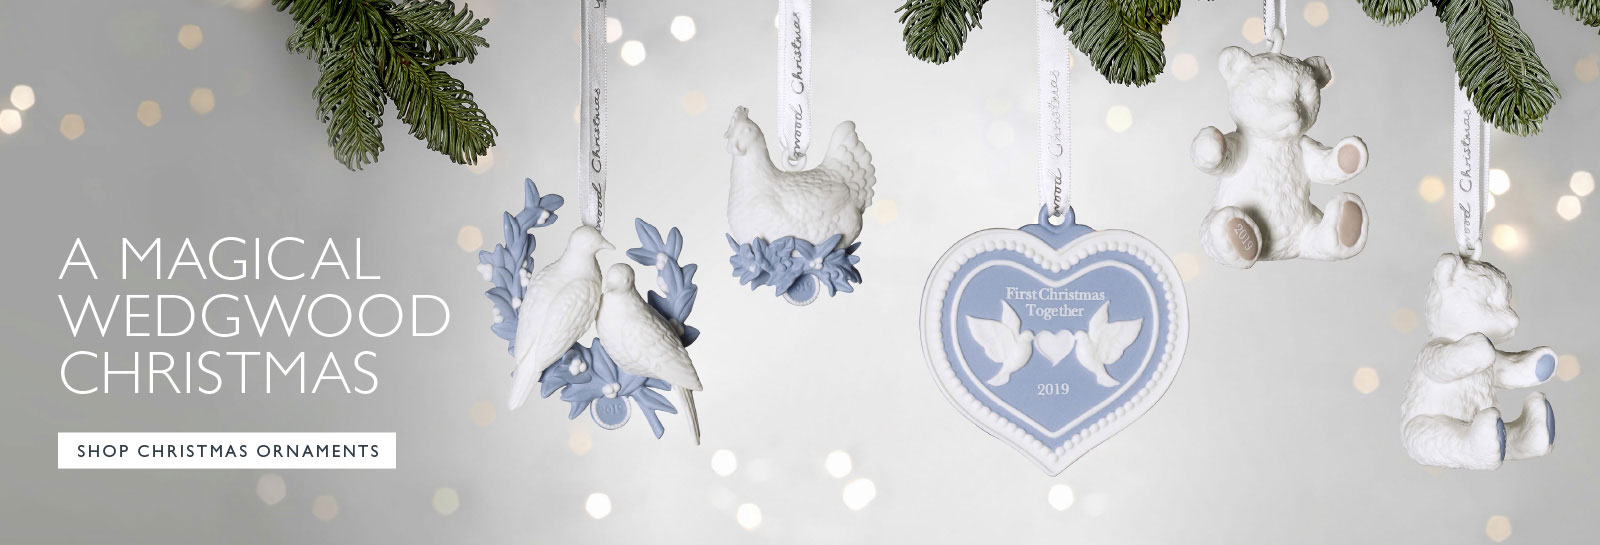 a magical wedgwood christmas - november